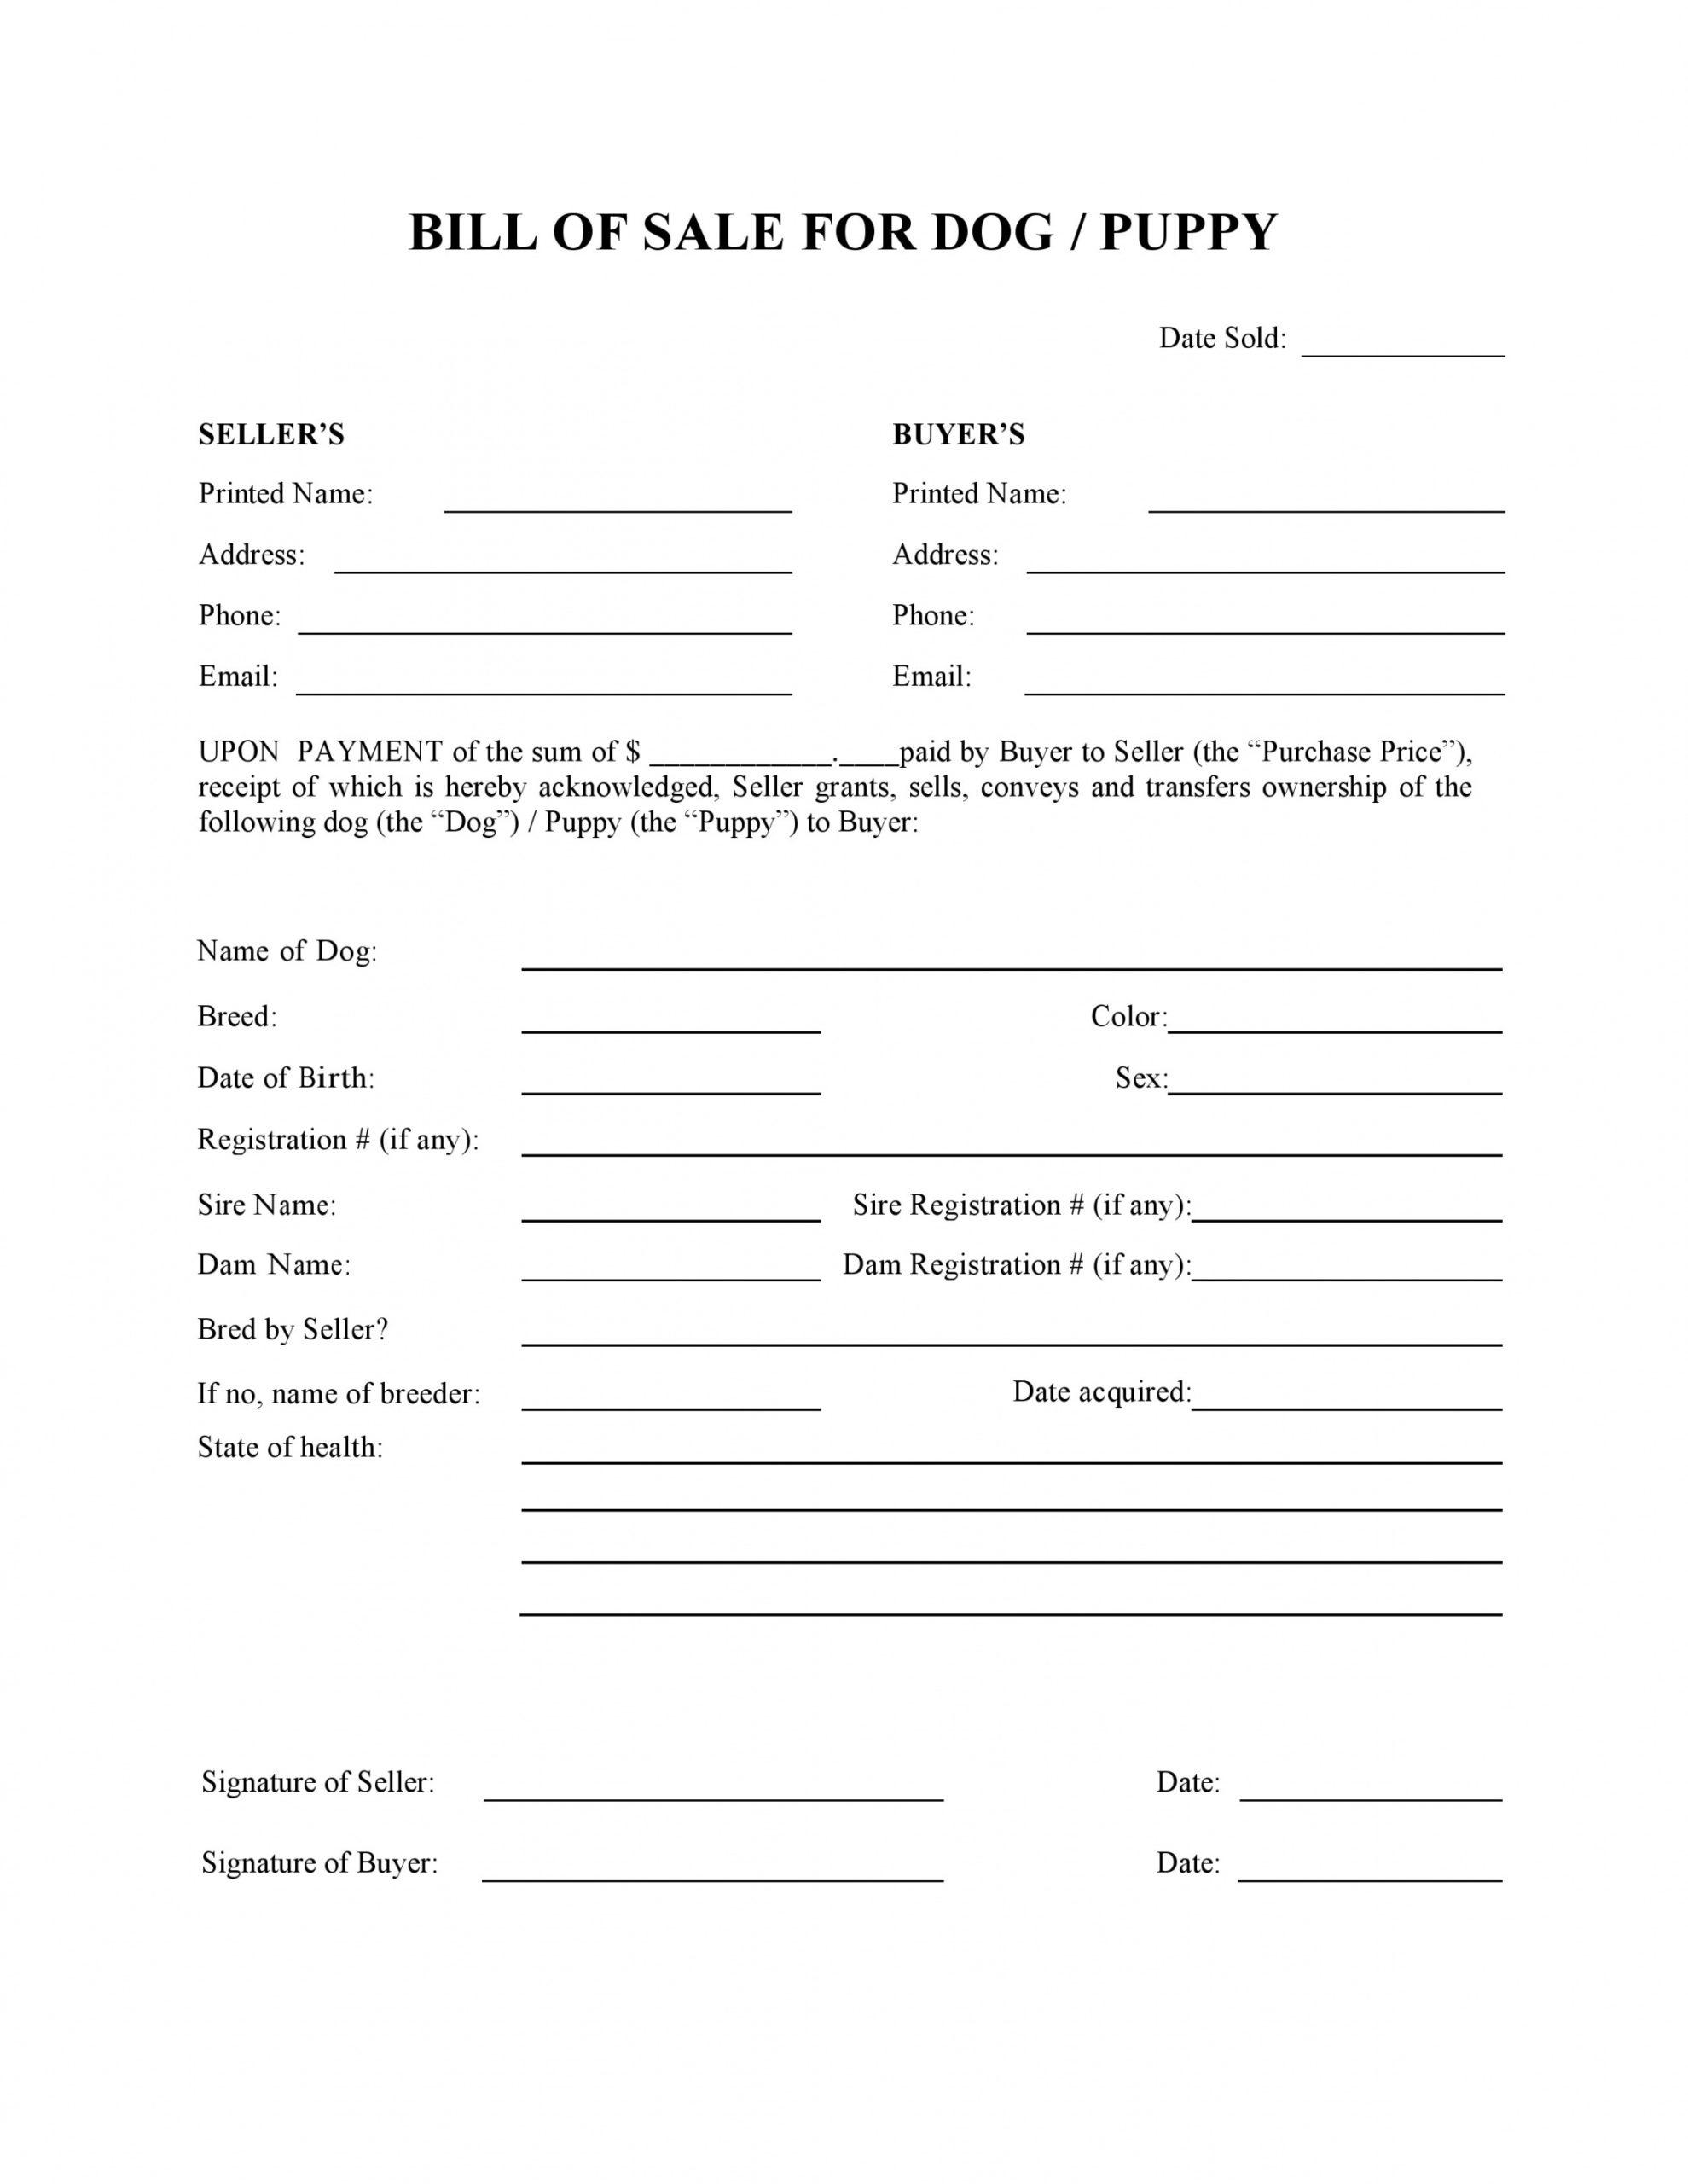 editable free dog or puppy bill of sale form  pdf  word  do it yourself forms dog sale contract template sample